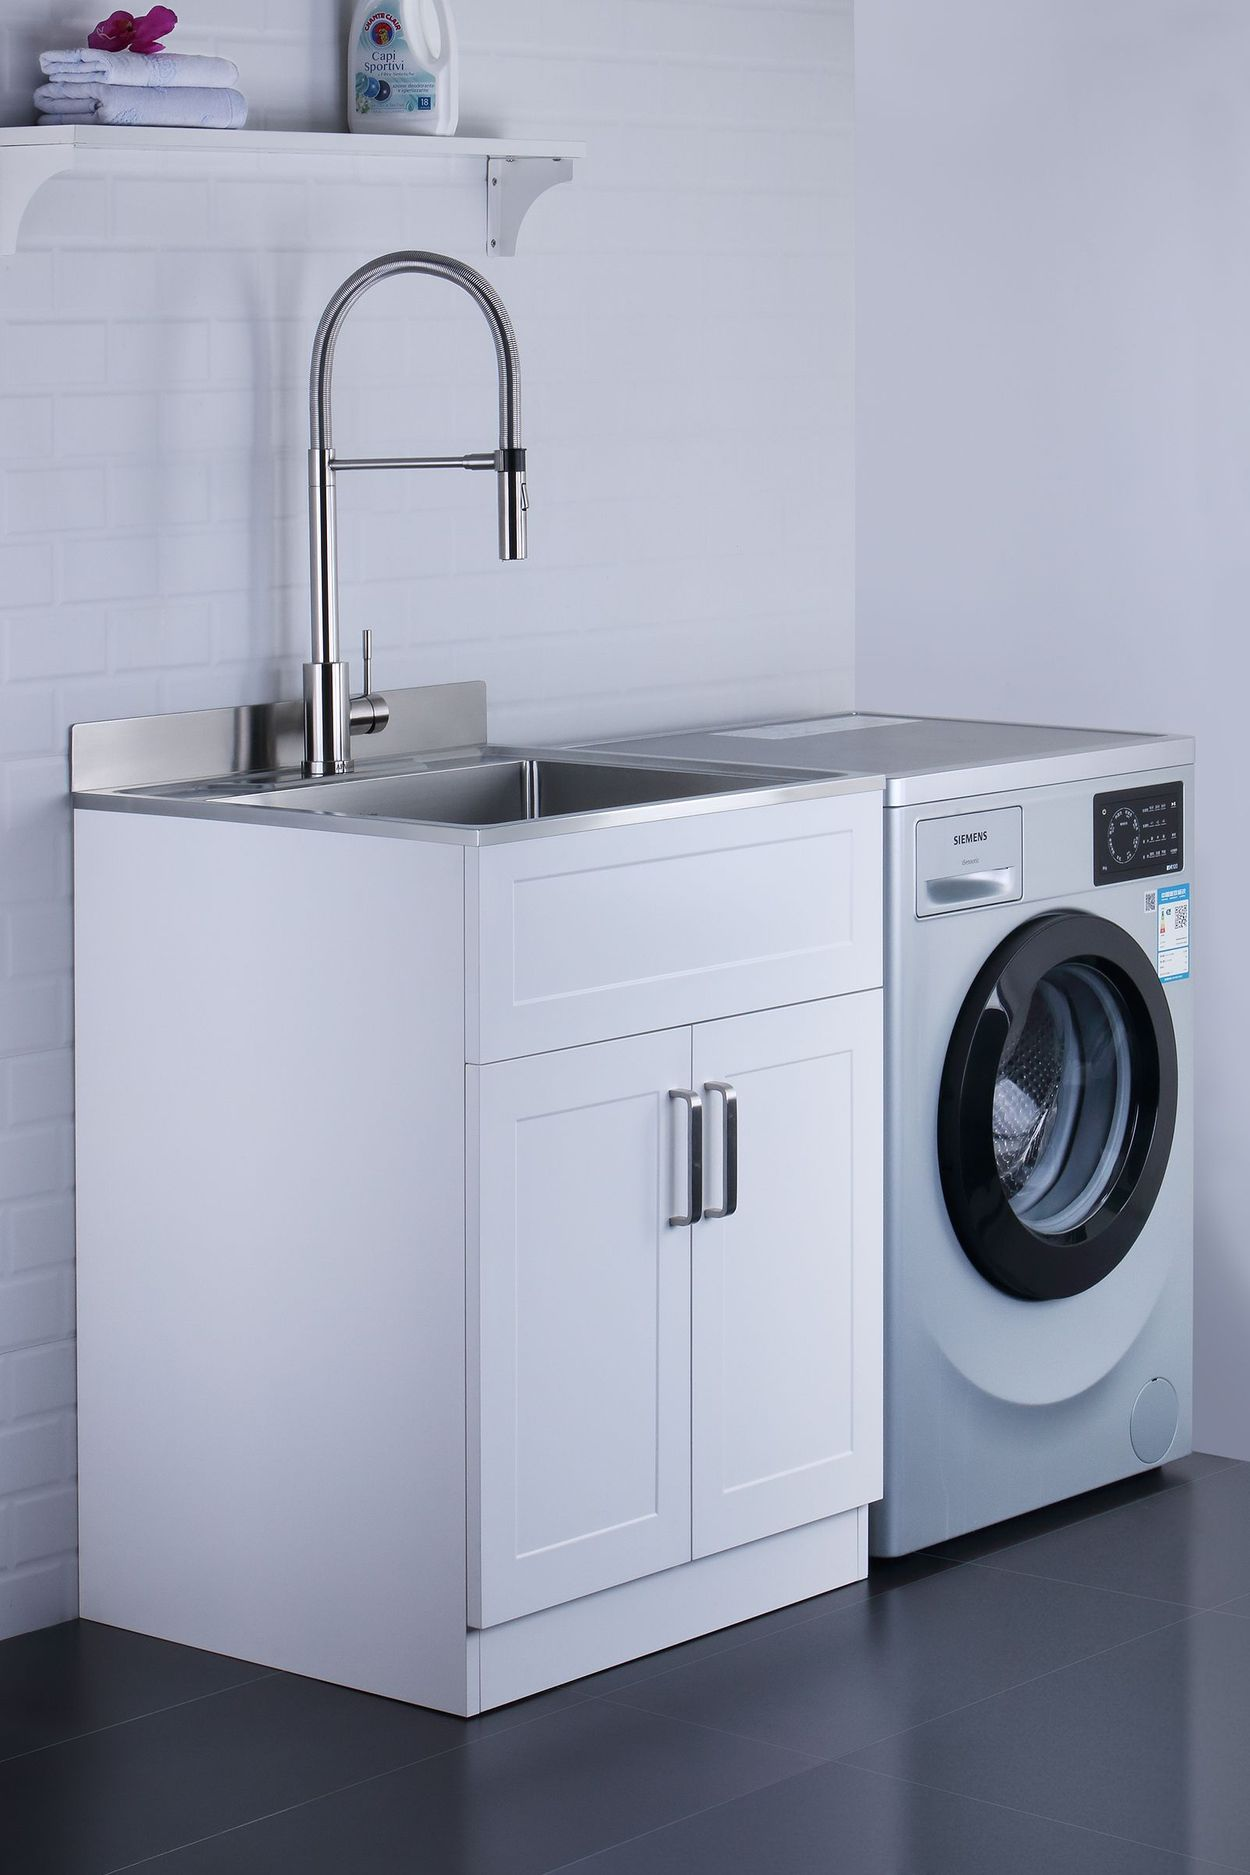 Picture of: Afa Stainless Steel Laundry Sink 25 X 22 With Faucet Cabinet